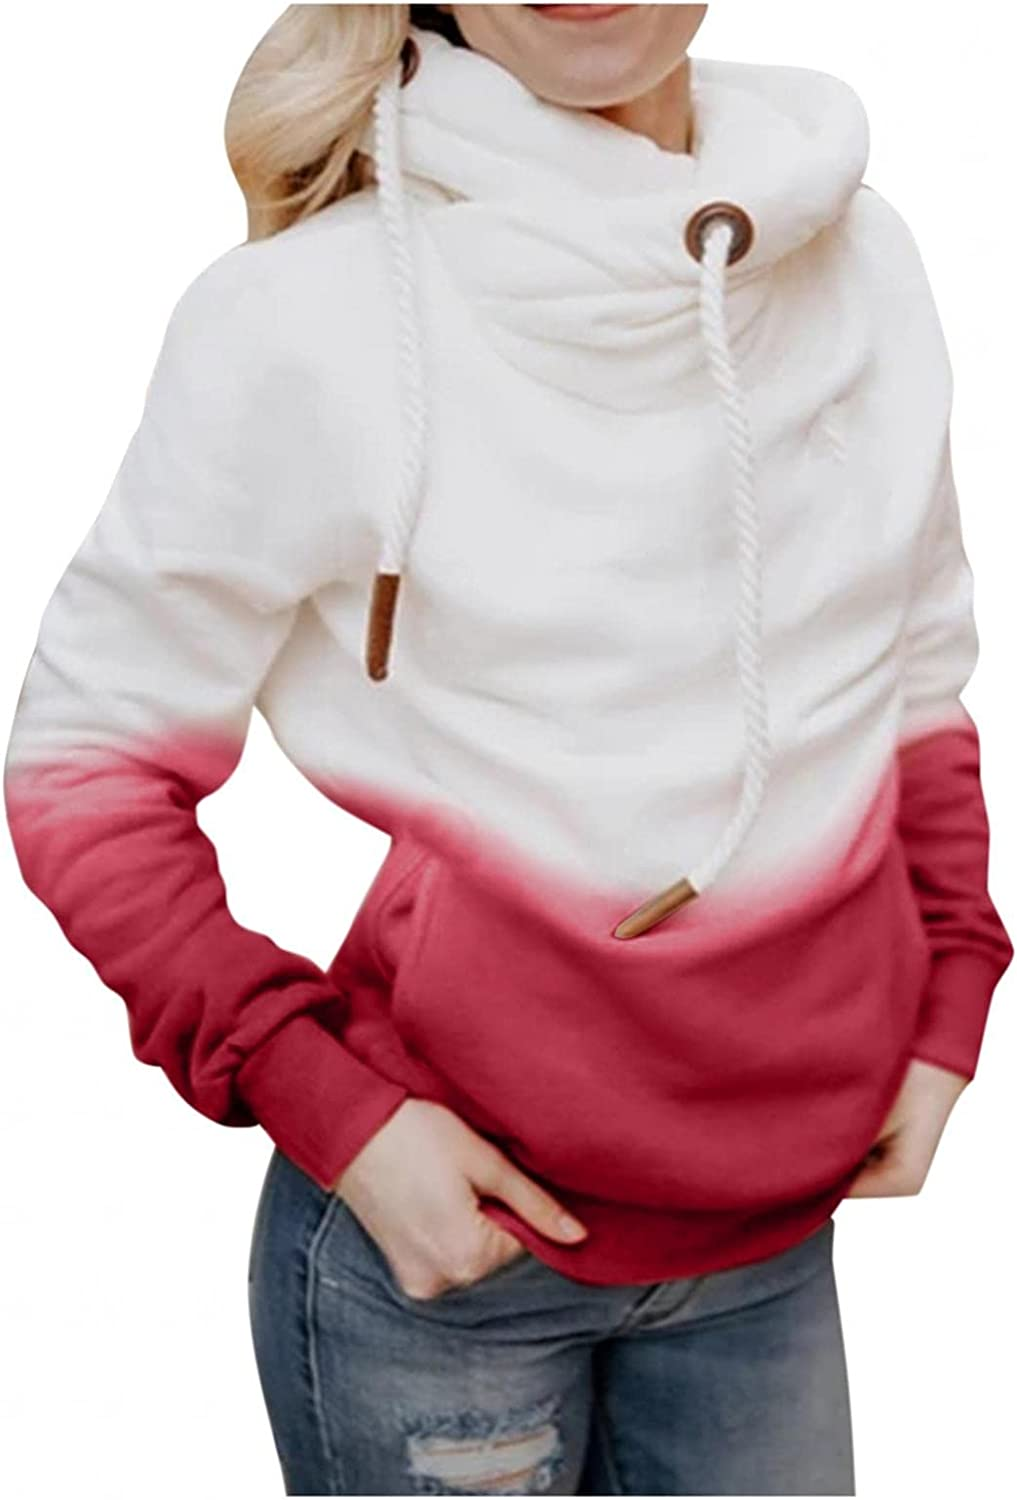 Pullover Hoodies for Women Pullover Sweatshirts Drawstring Hooded Casual Cowl Neck Long Sleeve Colorblock Tops with Pockets